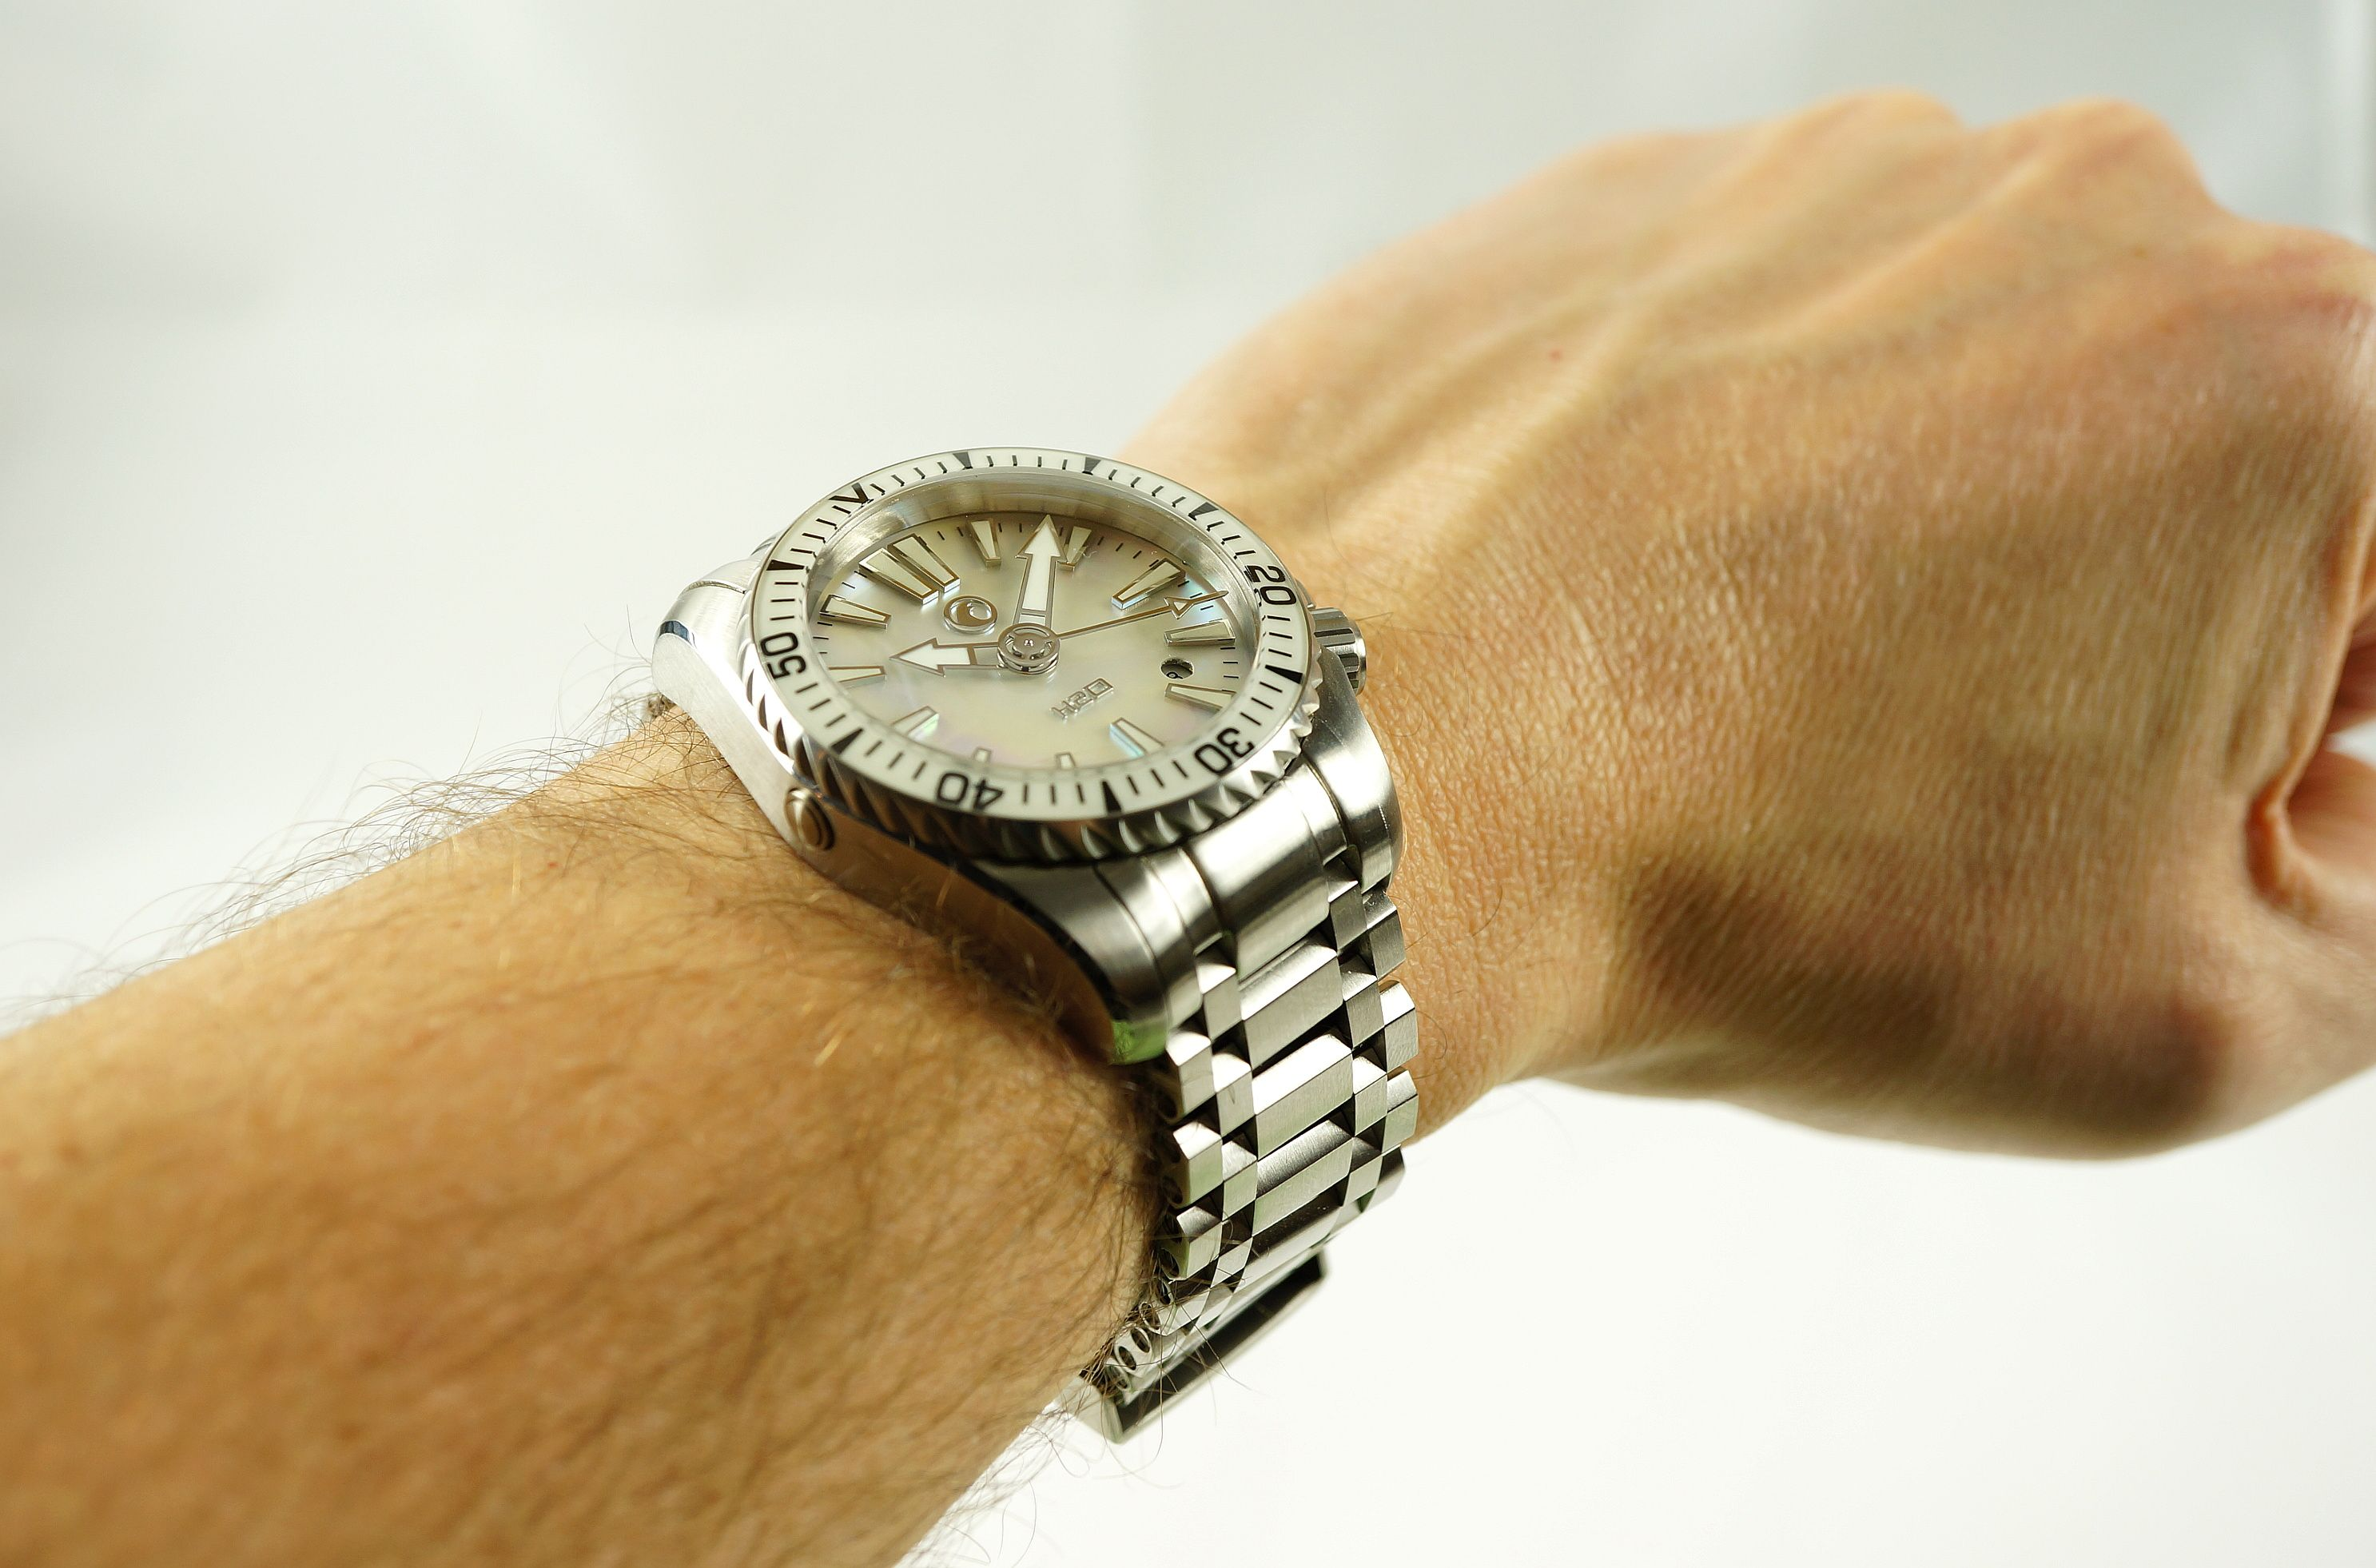 watch off orca watches image microbrand show your viewtopic dive connection forum the